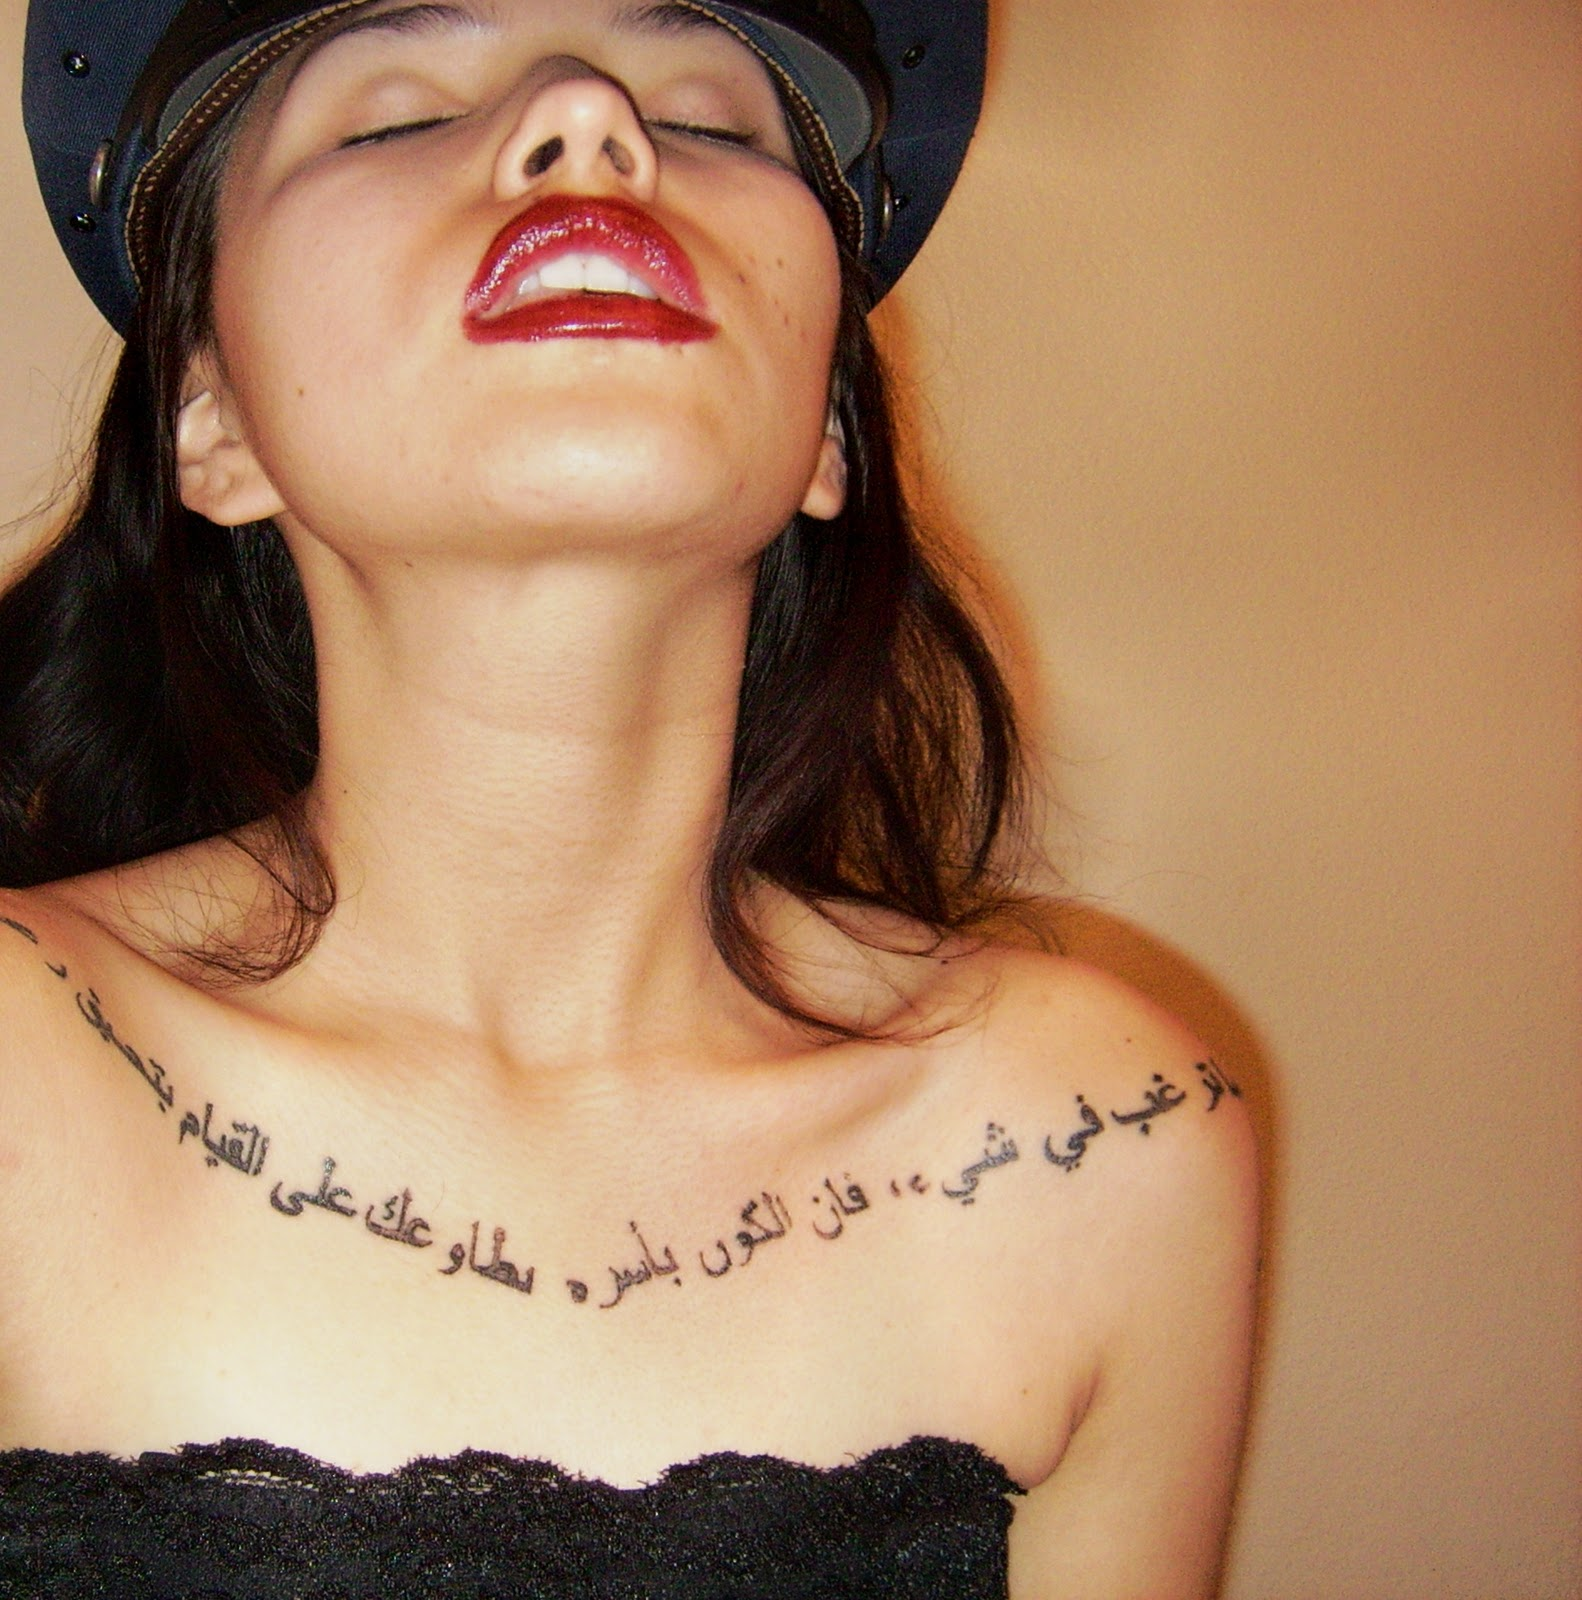 Arabic tattoo on rib cage